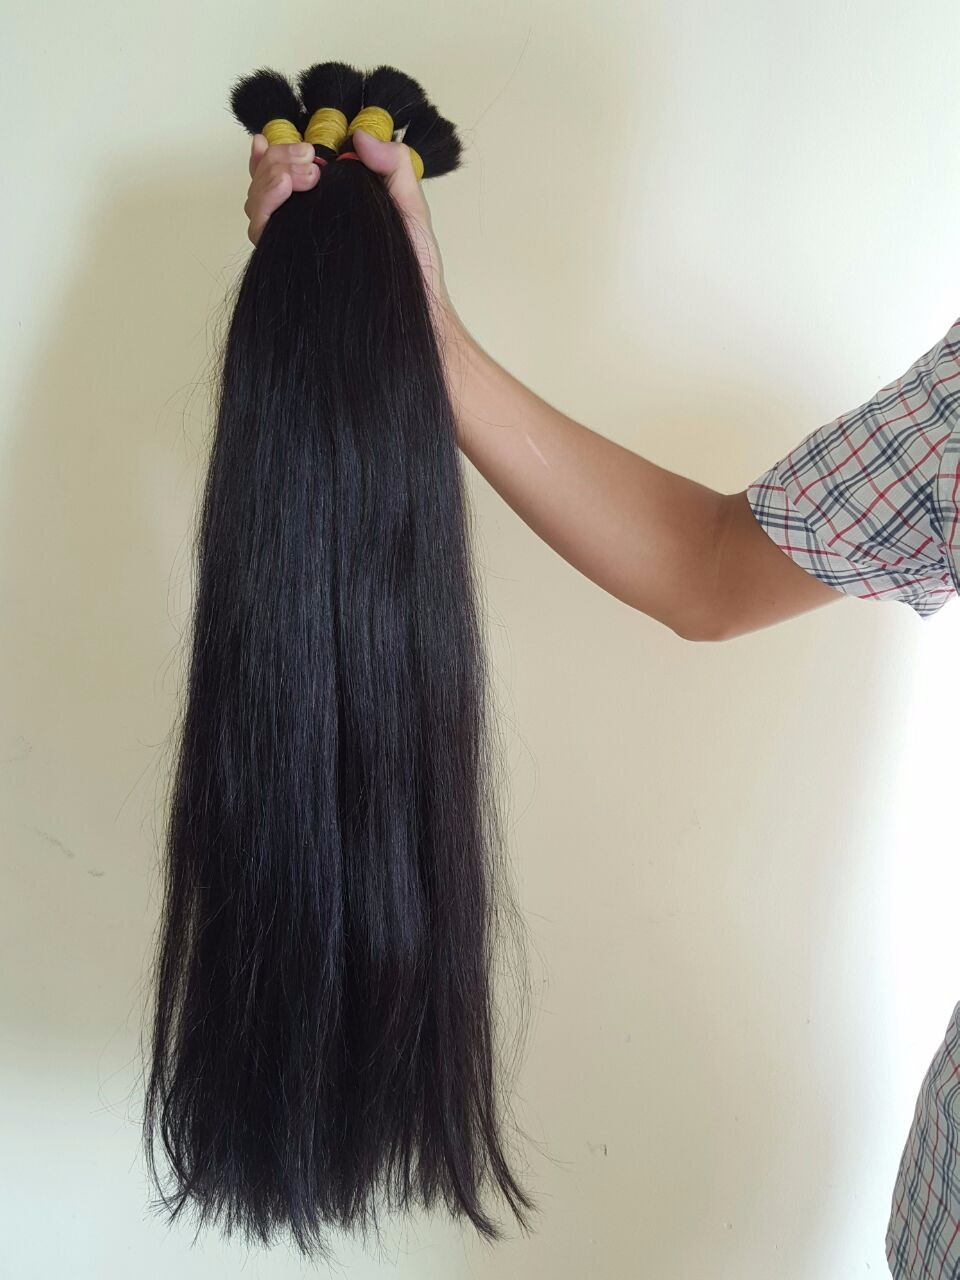 Brazilian Bulk hair for wig making in hair extension